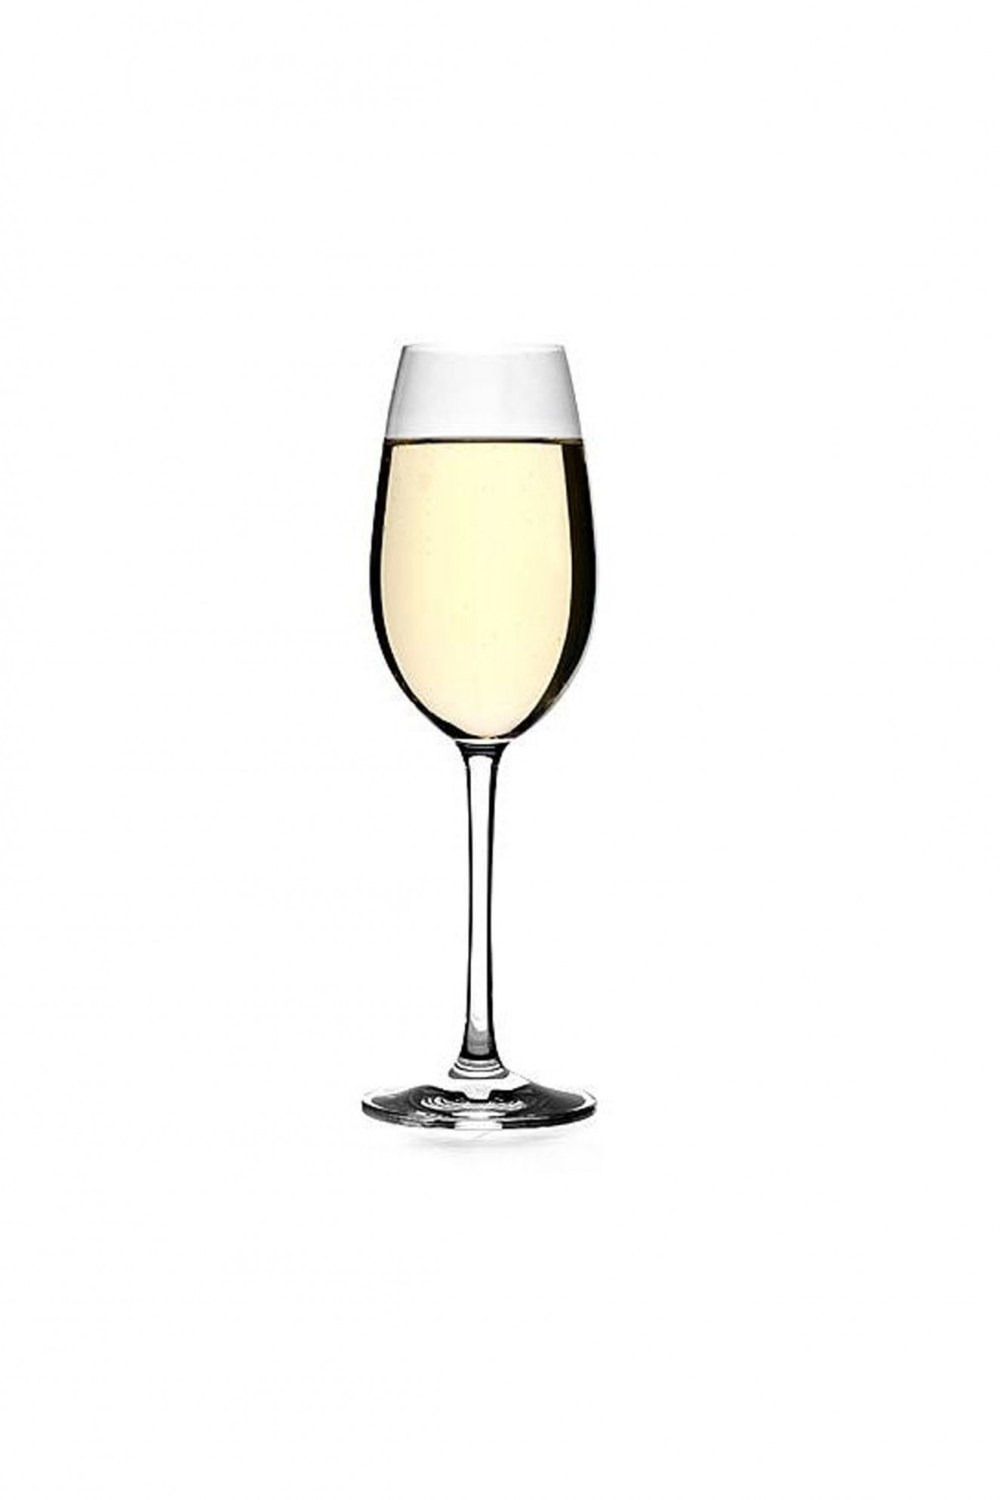 medium resolution of champagne glass clipart 3